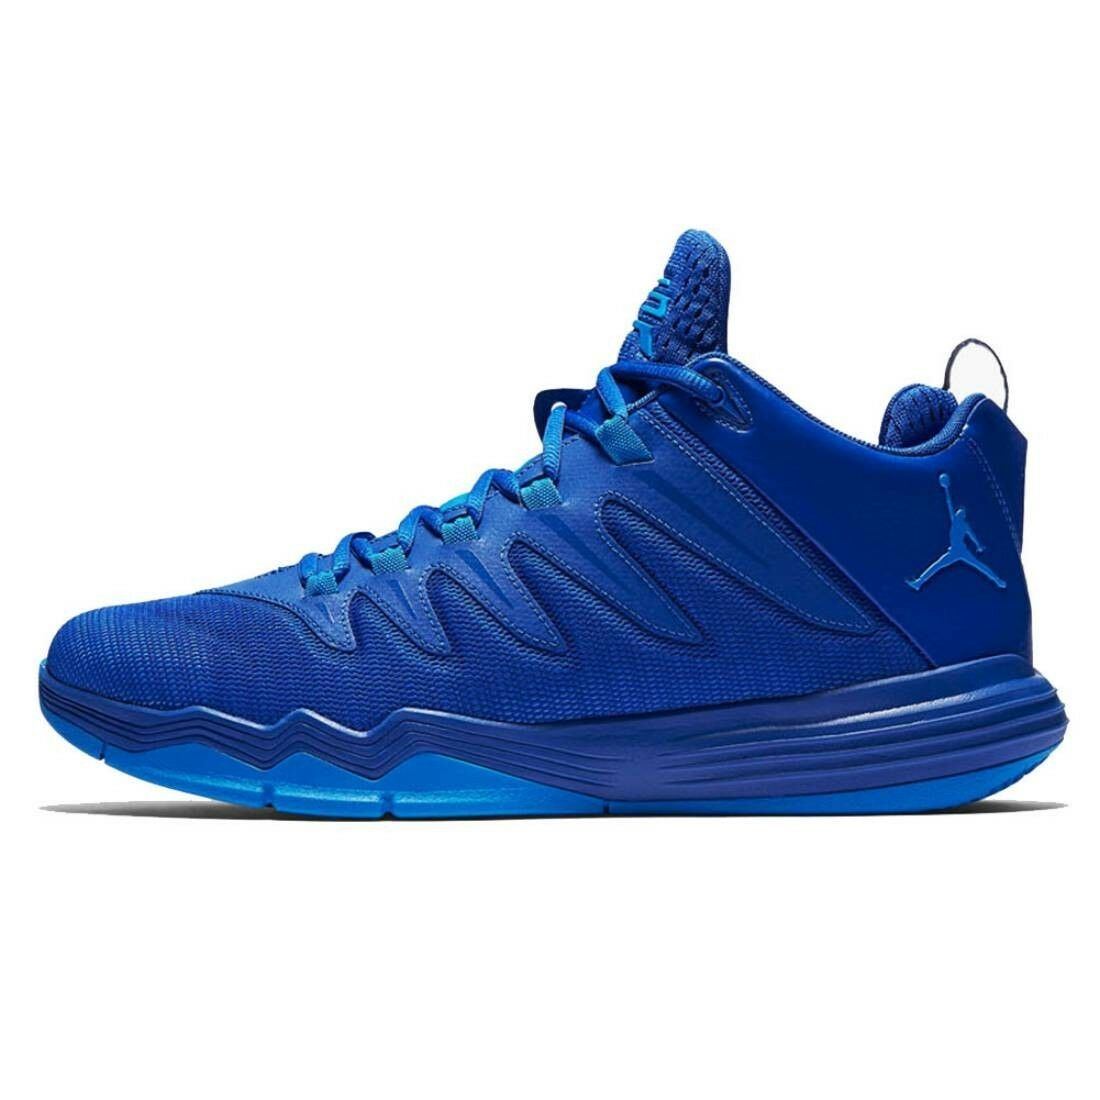 810868-405 Jordan Uomo CP3.IX Blue Game Royal Photo Blue Infrared 23